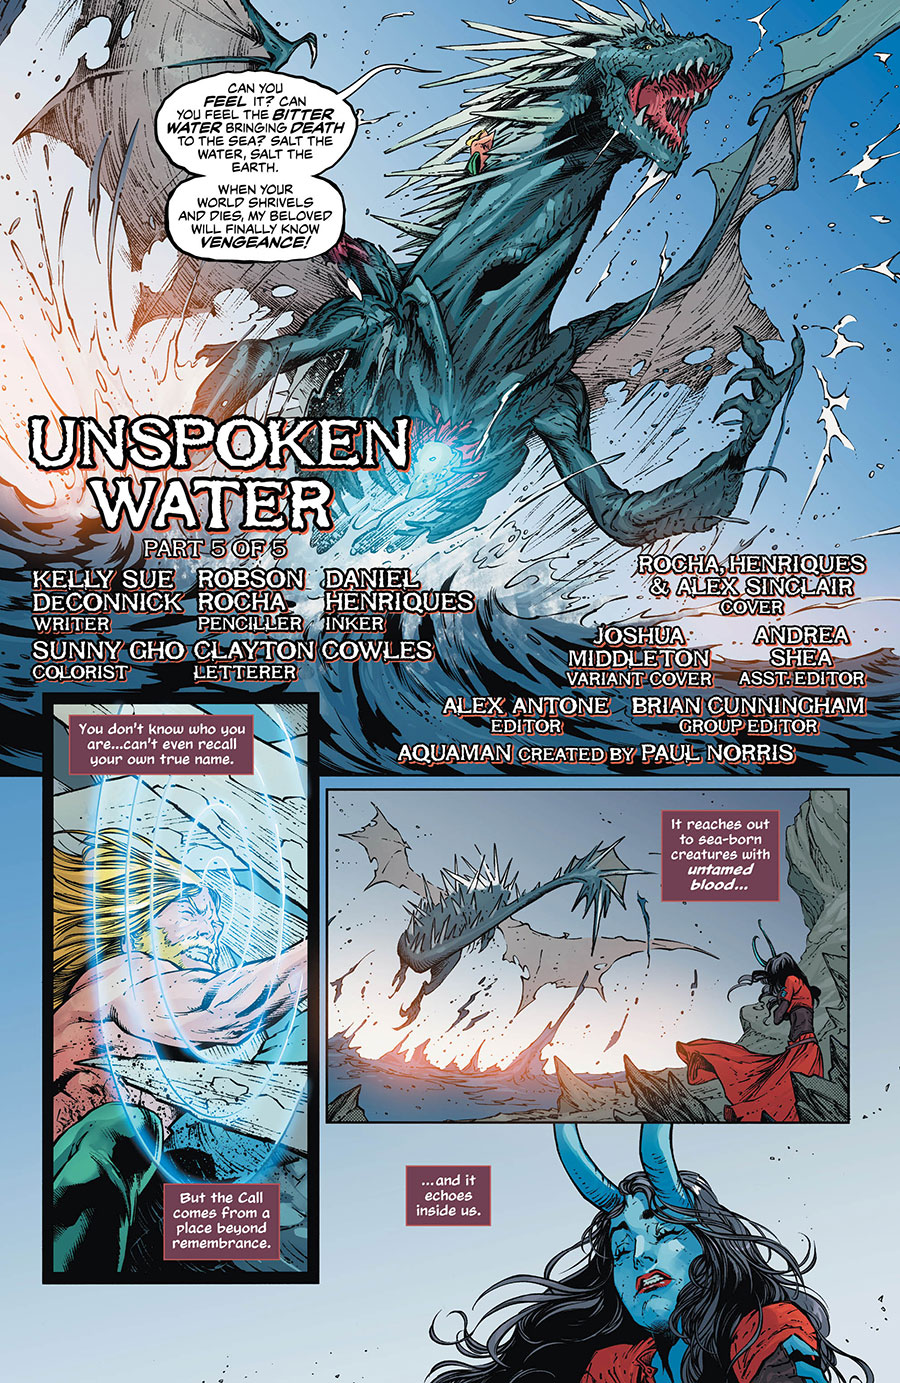 Aquaman_47_1 - DC Comics News